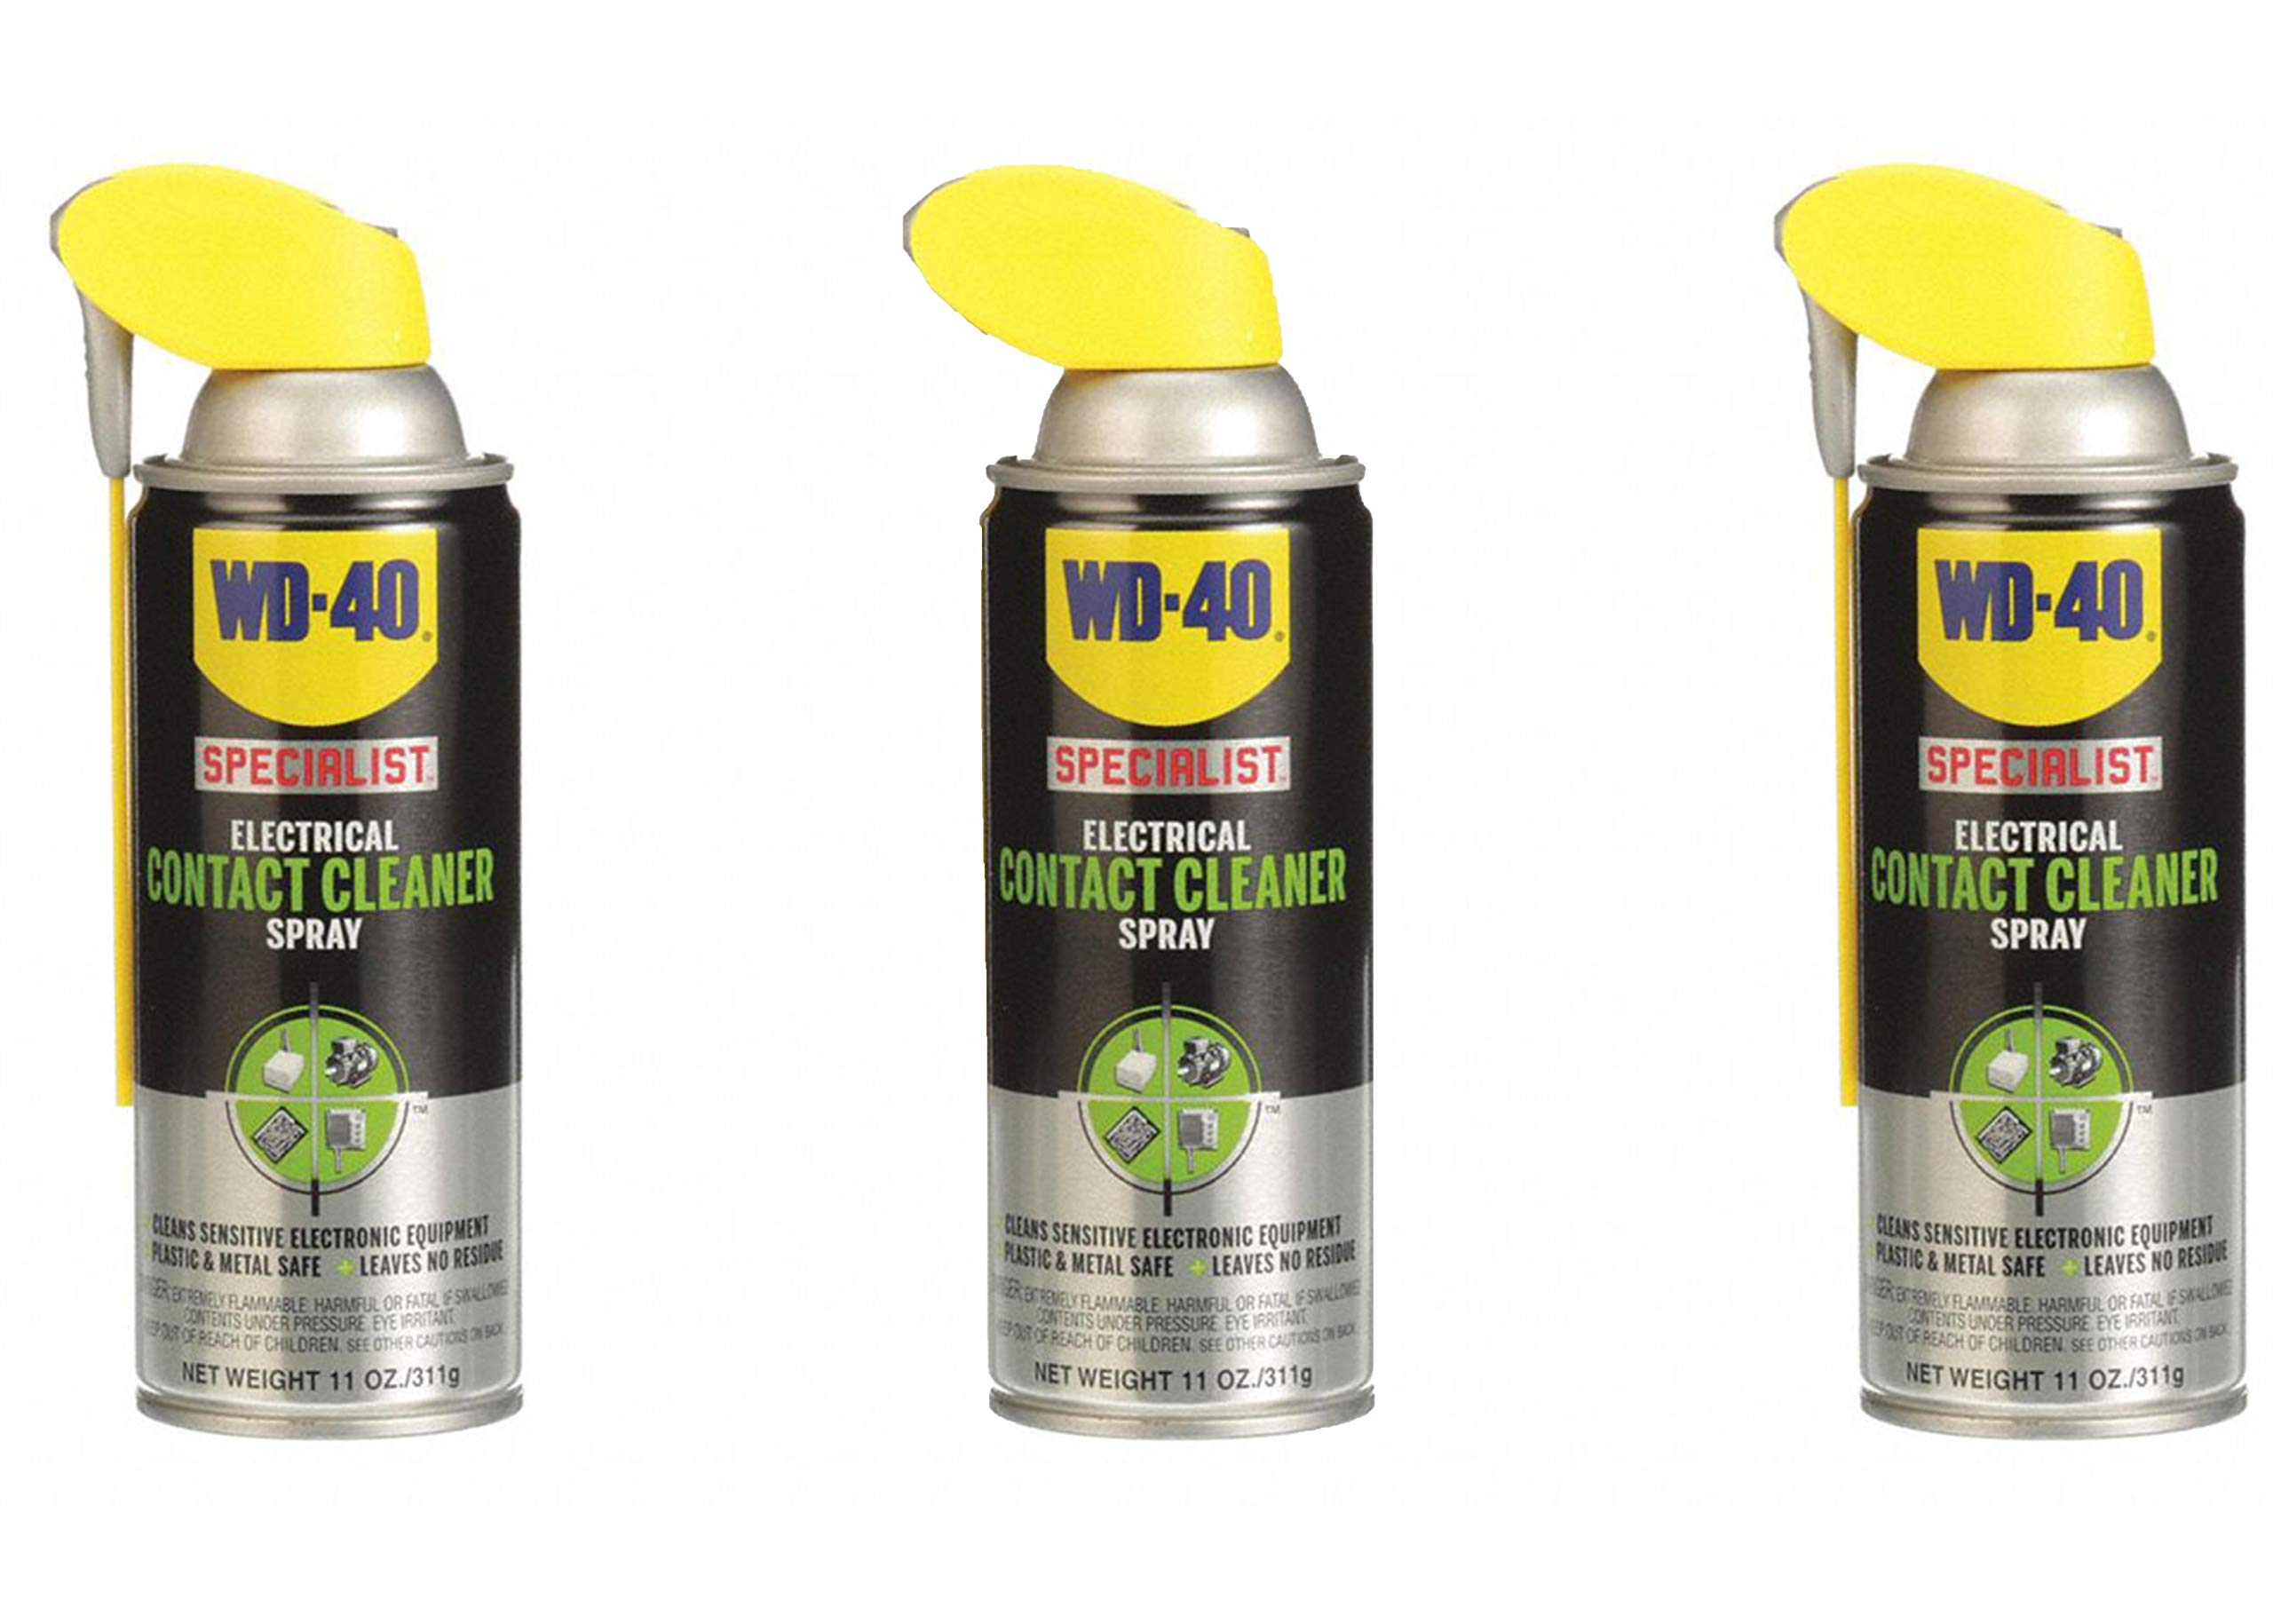 WD 40 Specialist Electrical Contact Aerosol Cleaner Spray, 11 Ounces (3 Pack)